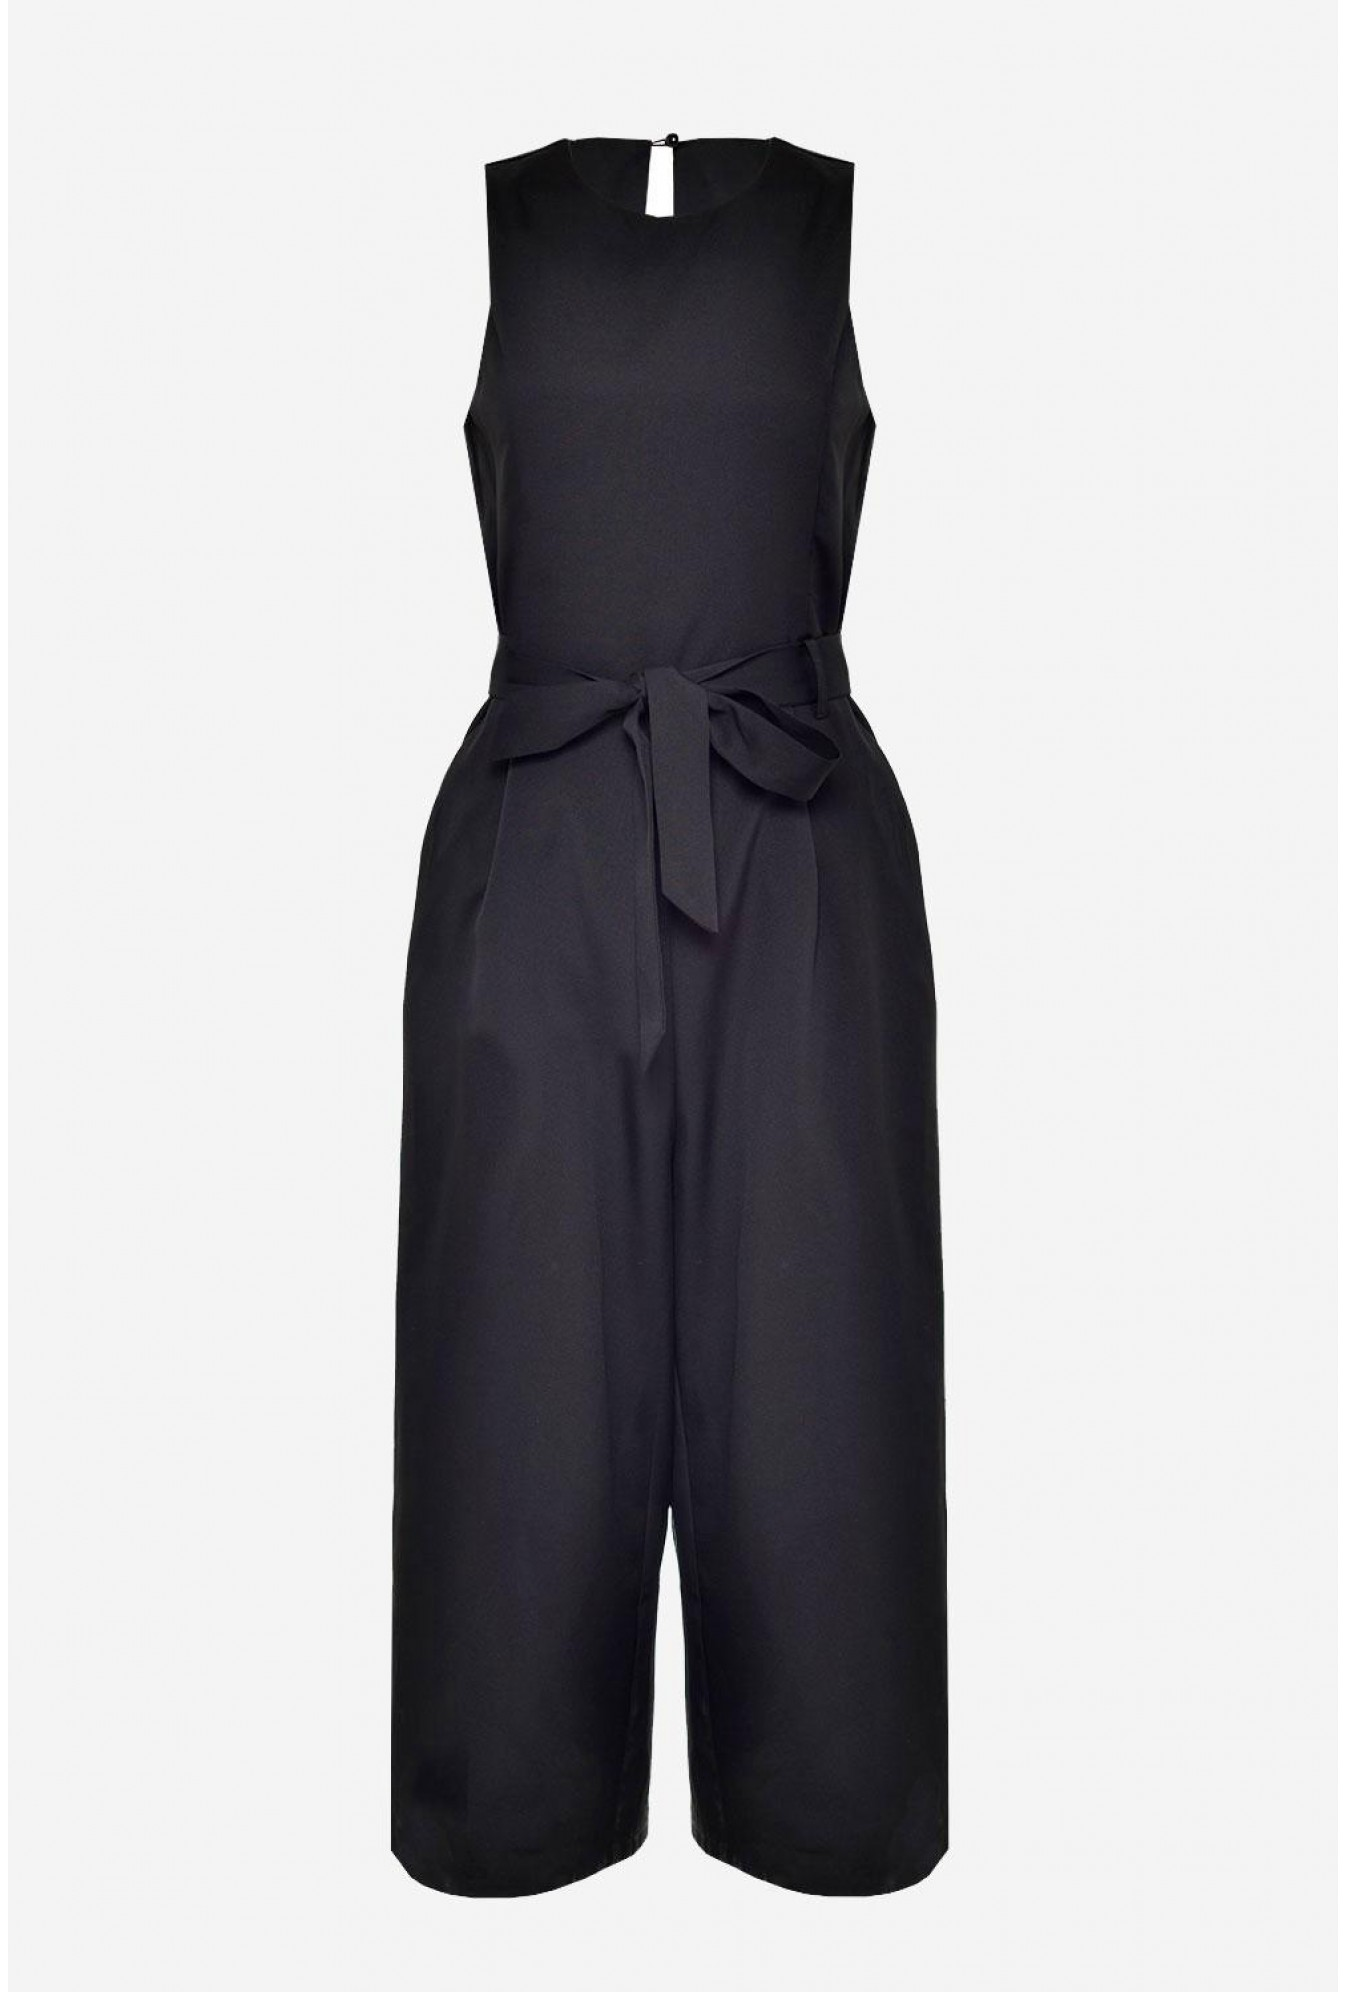 ef72dff0207b More Views. Layla Longline Culotte Jumpsuit in Black. Video Gallery. Marc  Angelo